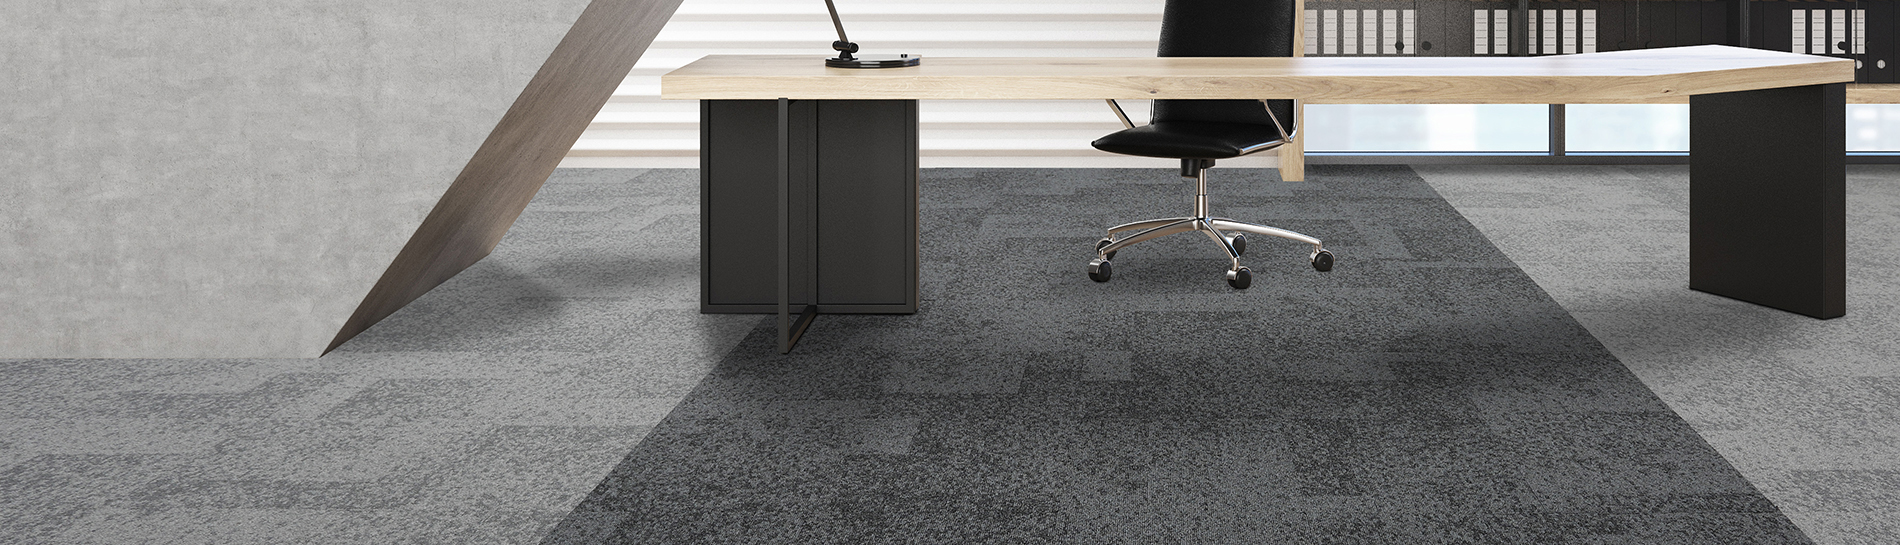 https://www.burmatex.co.uk/wp-content/uploads/2018/06/rainfall-light-shade-carpet-tiles.jpg